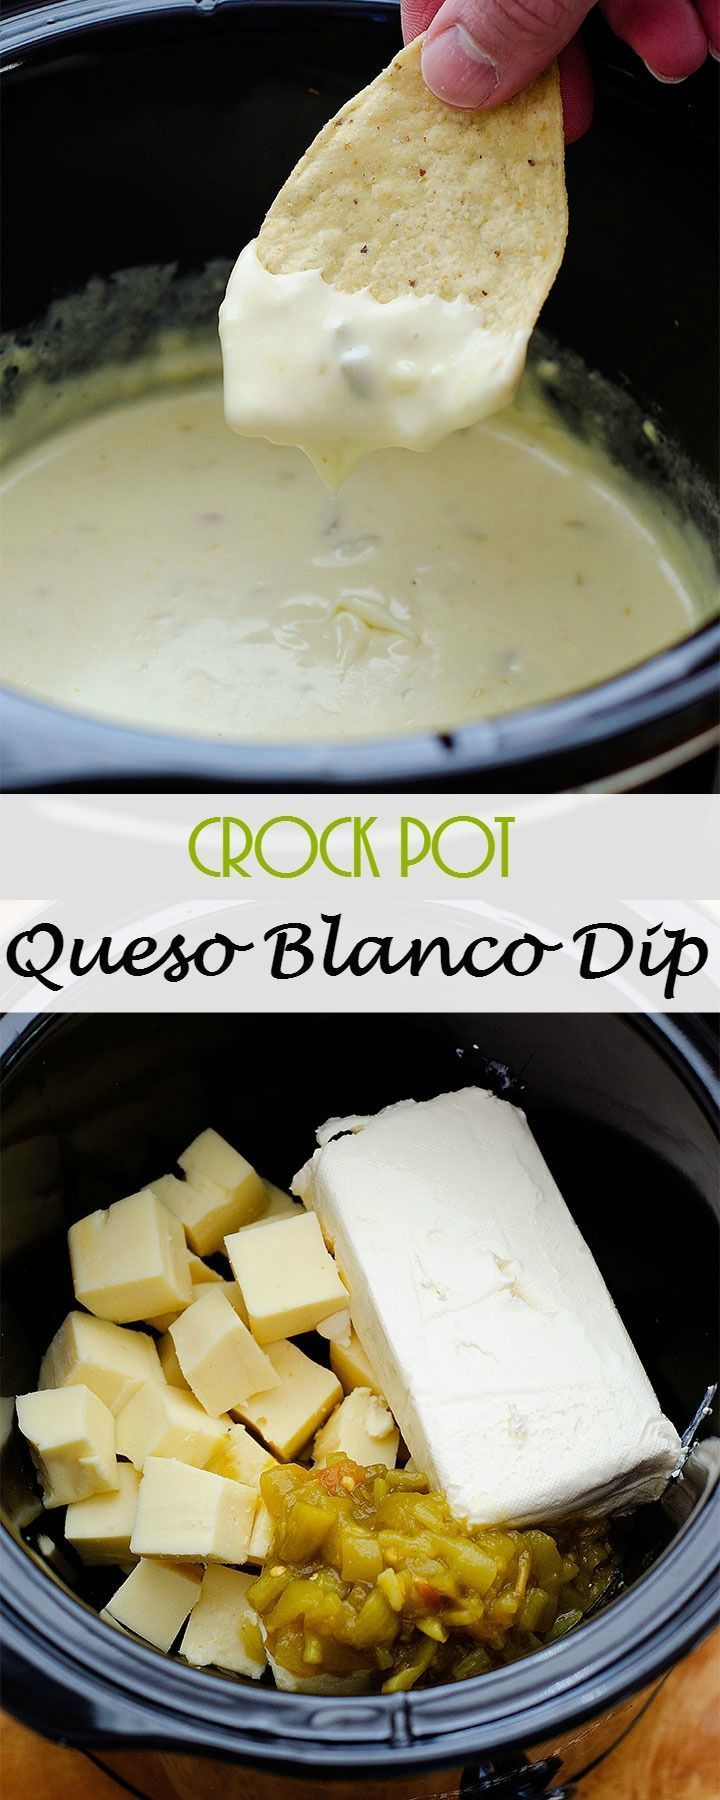 I have to apologize for the massive amounts of Mexican food I've been posting lately, but I just can't help myself.  (and no I'm not pregnant!) This Crock Pot Queso Blanco Dip is one of the latest recipes we enjoyed and it was spectacular! Warm gooey white cheese with green chilies slow cooks in...Read More »